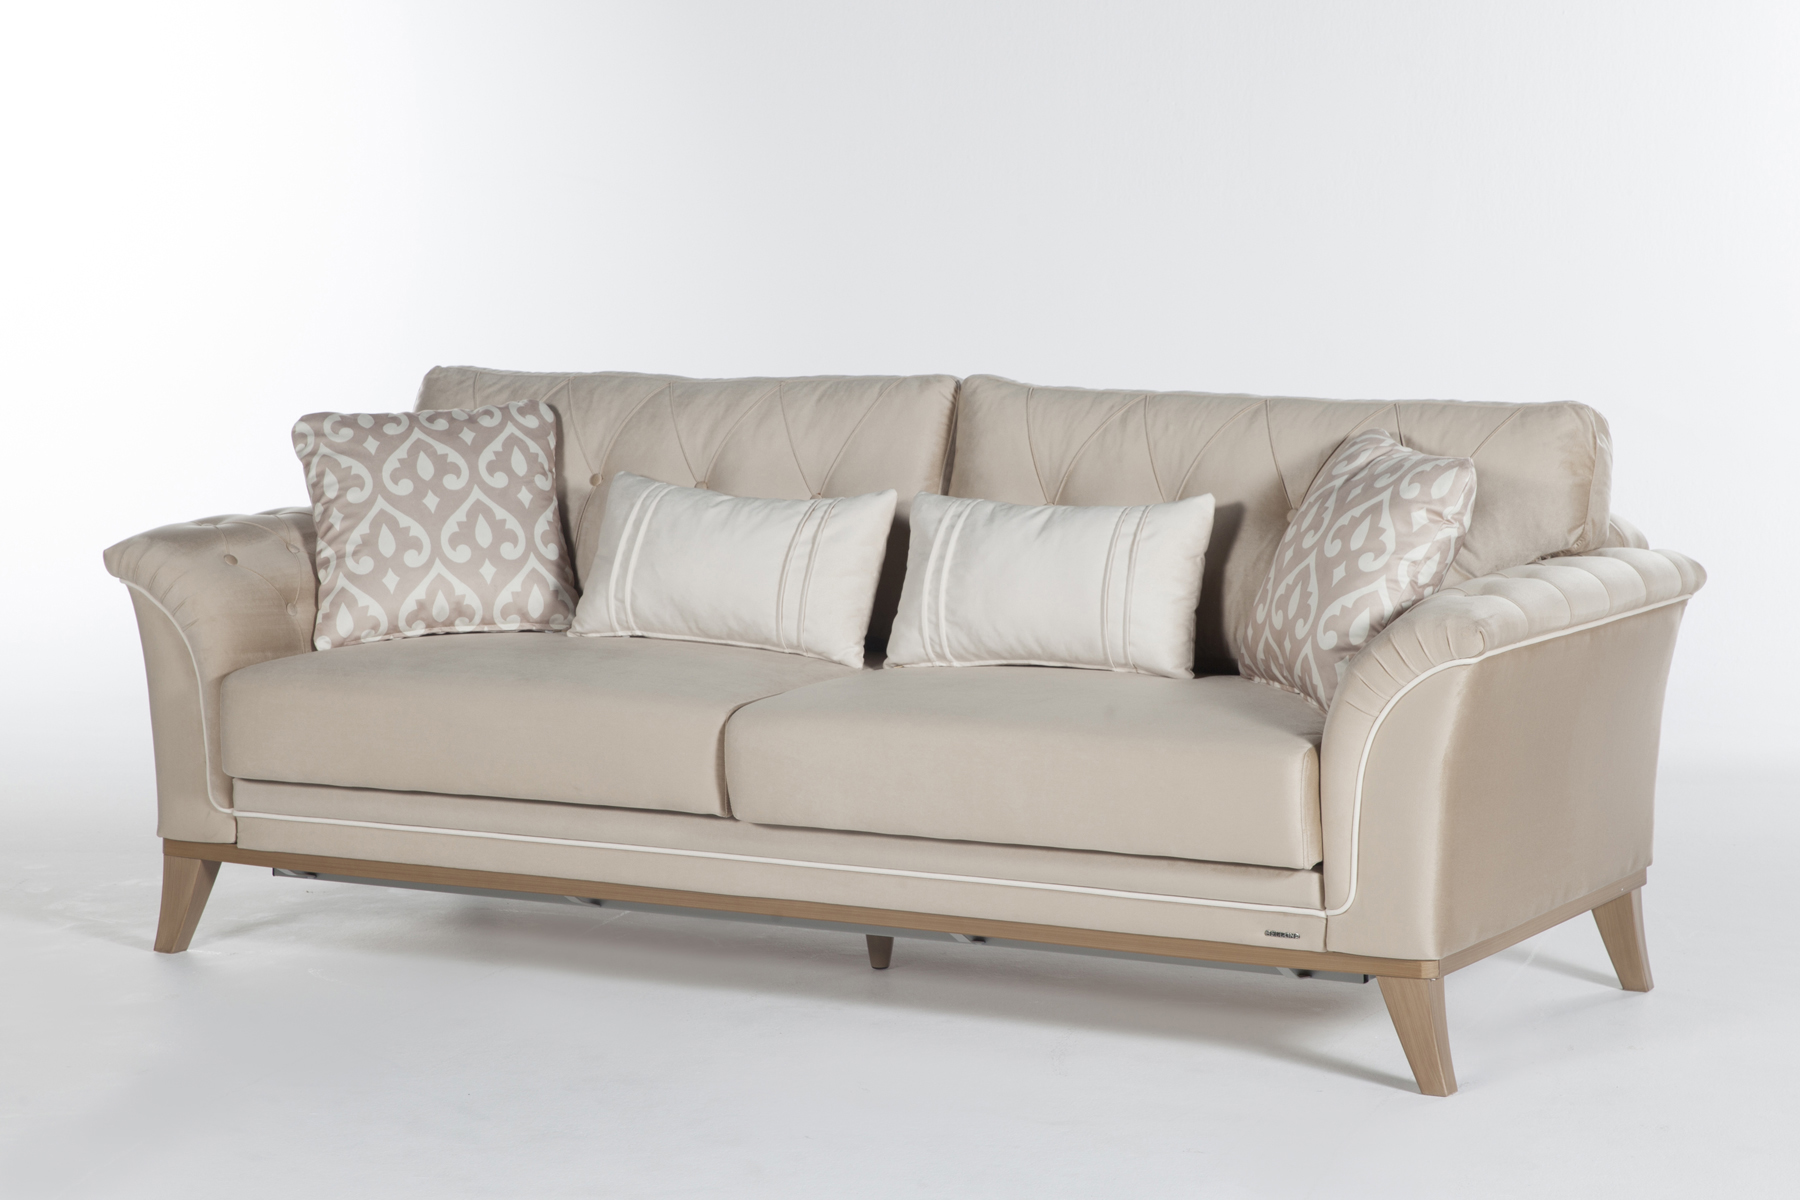 Dekora Zero Vizon Convertible Sofa Bed by Sunset